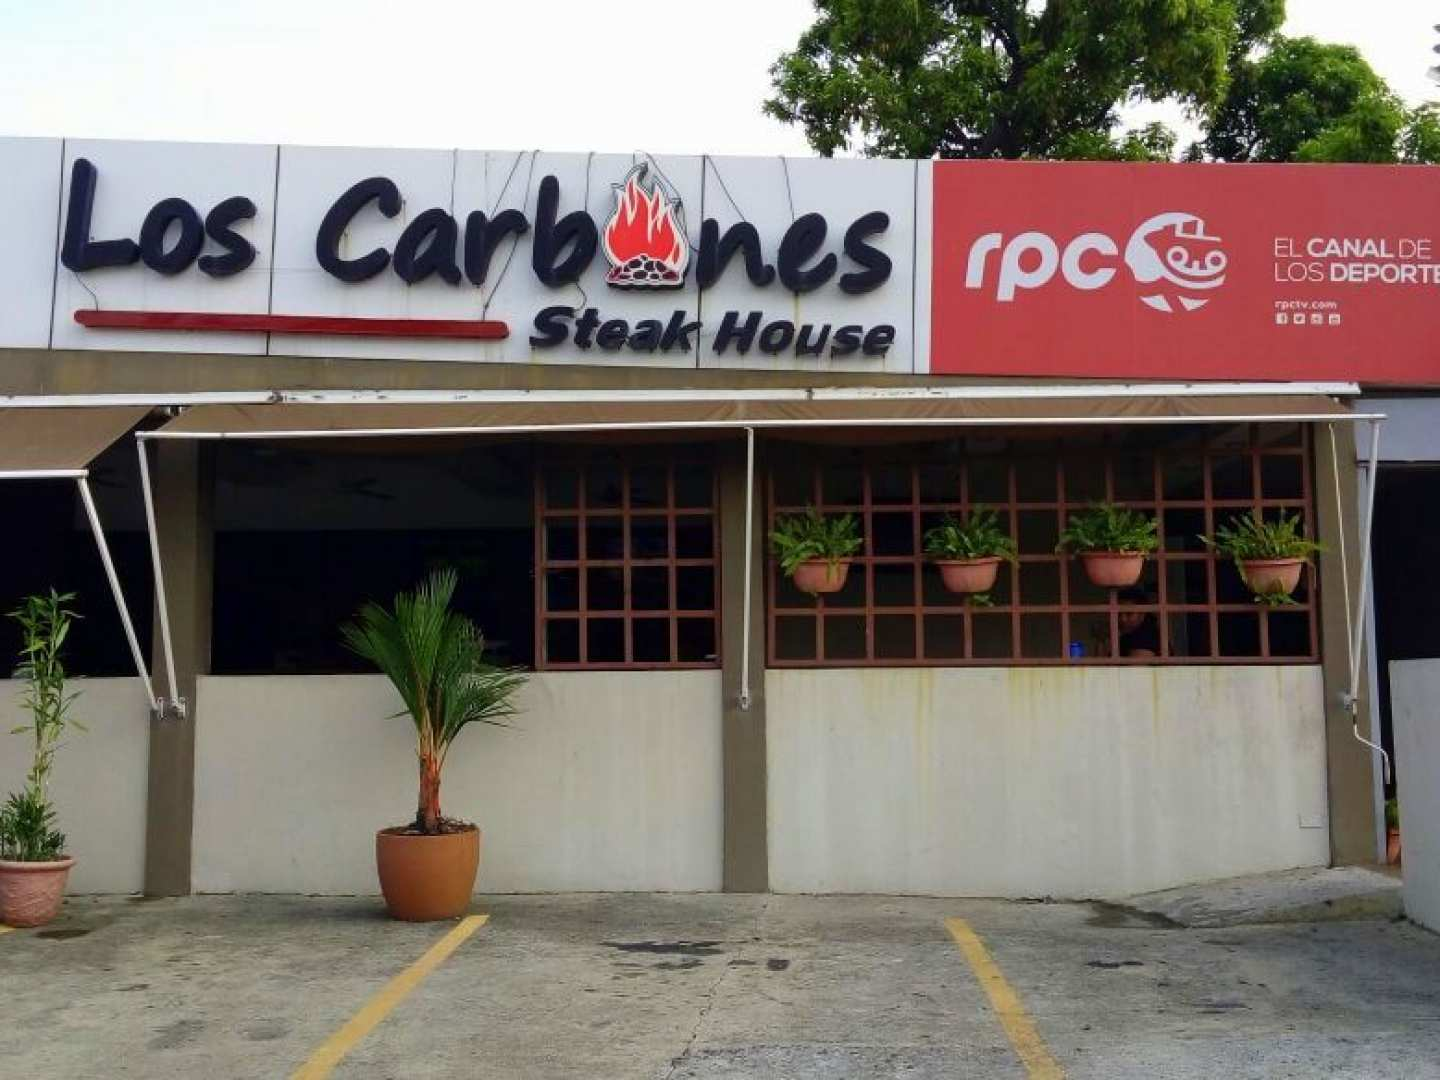 Los Carbones Steak House